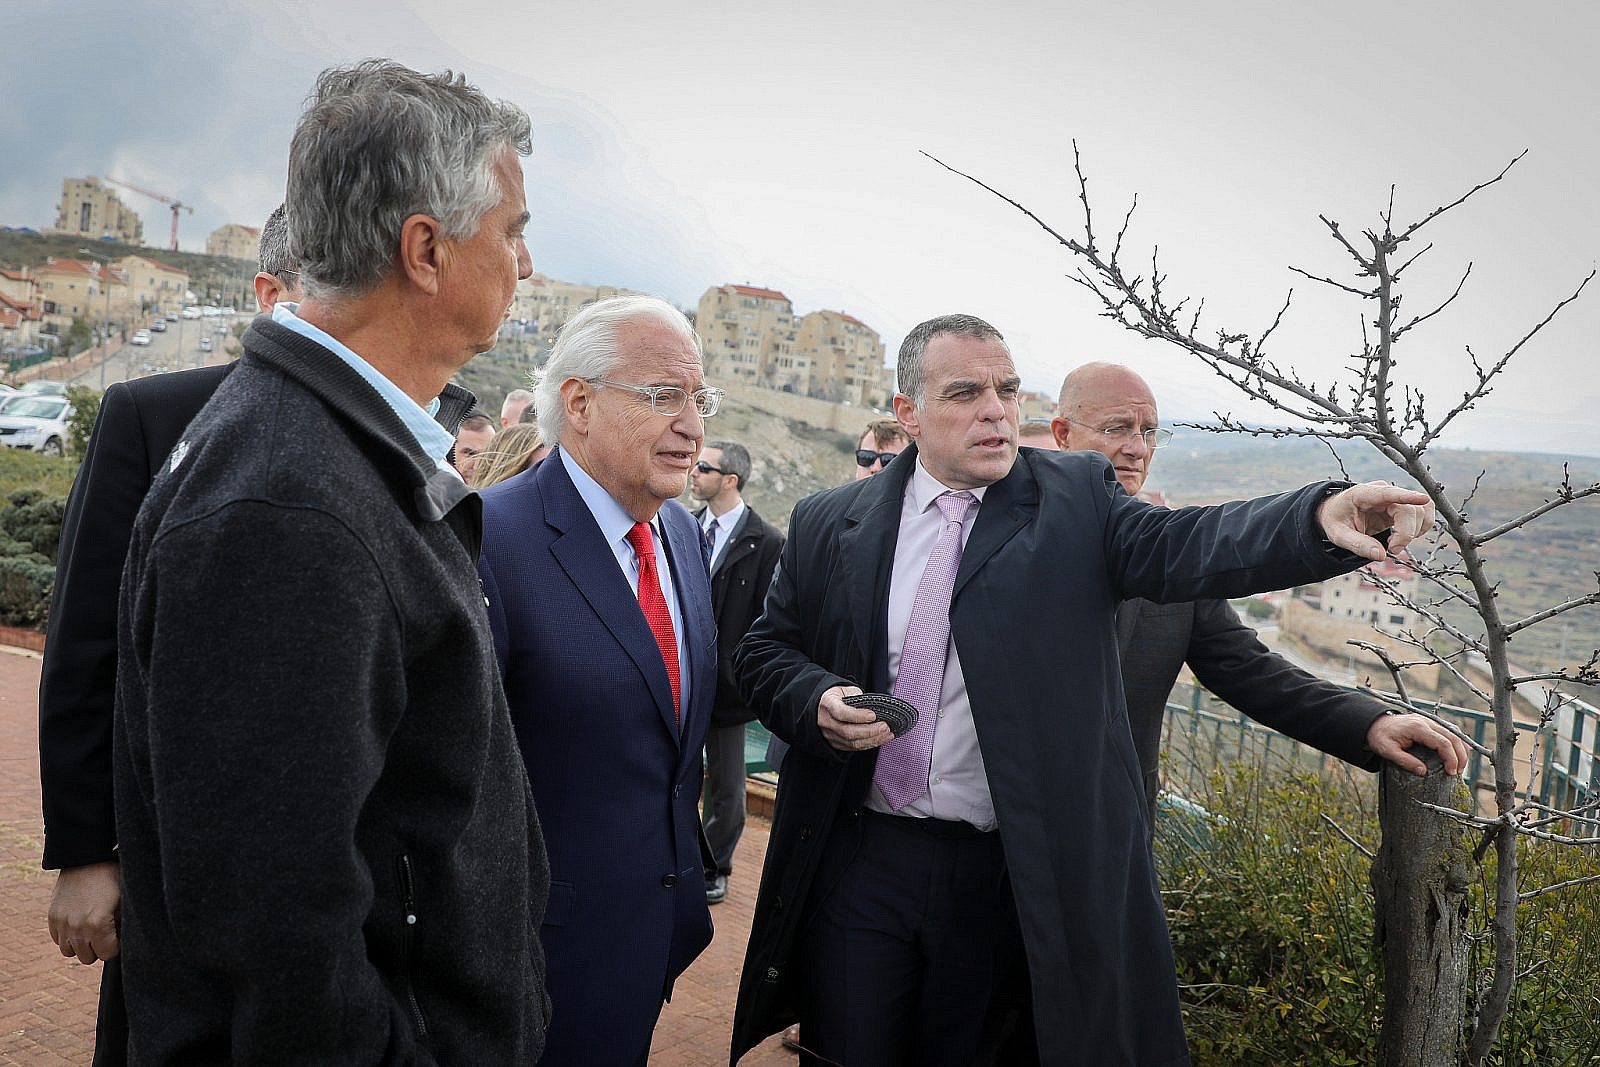 U.S. ambassador to Israel, David Friedman, with Head of Efrat regional council Oded Revivi and heads of local councils in Judea and Samaria during a visit to the settlement of Efrat, in Gush Etzion, February 20, 2020. (Gershon Elinson/Flash90)